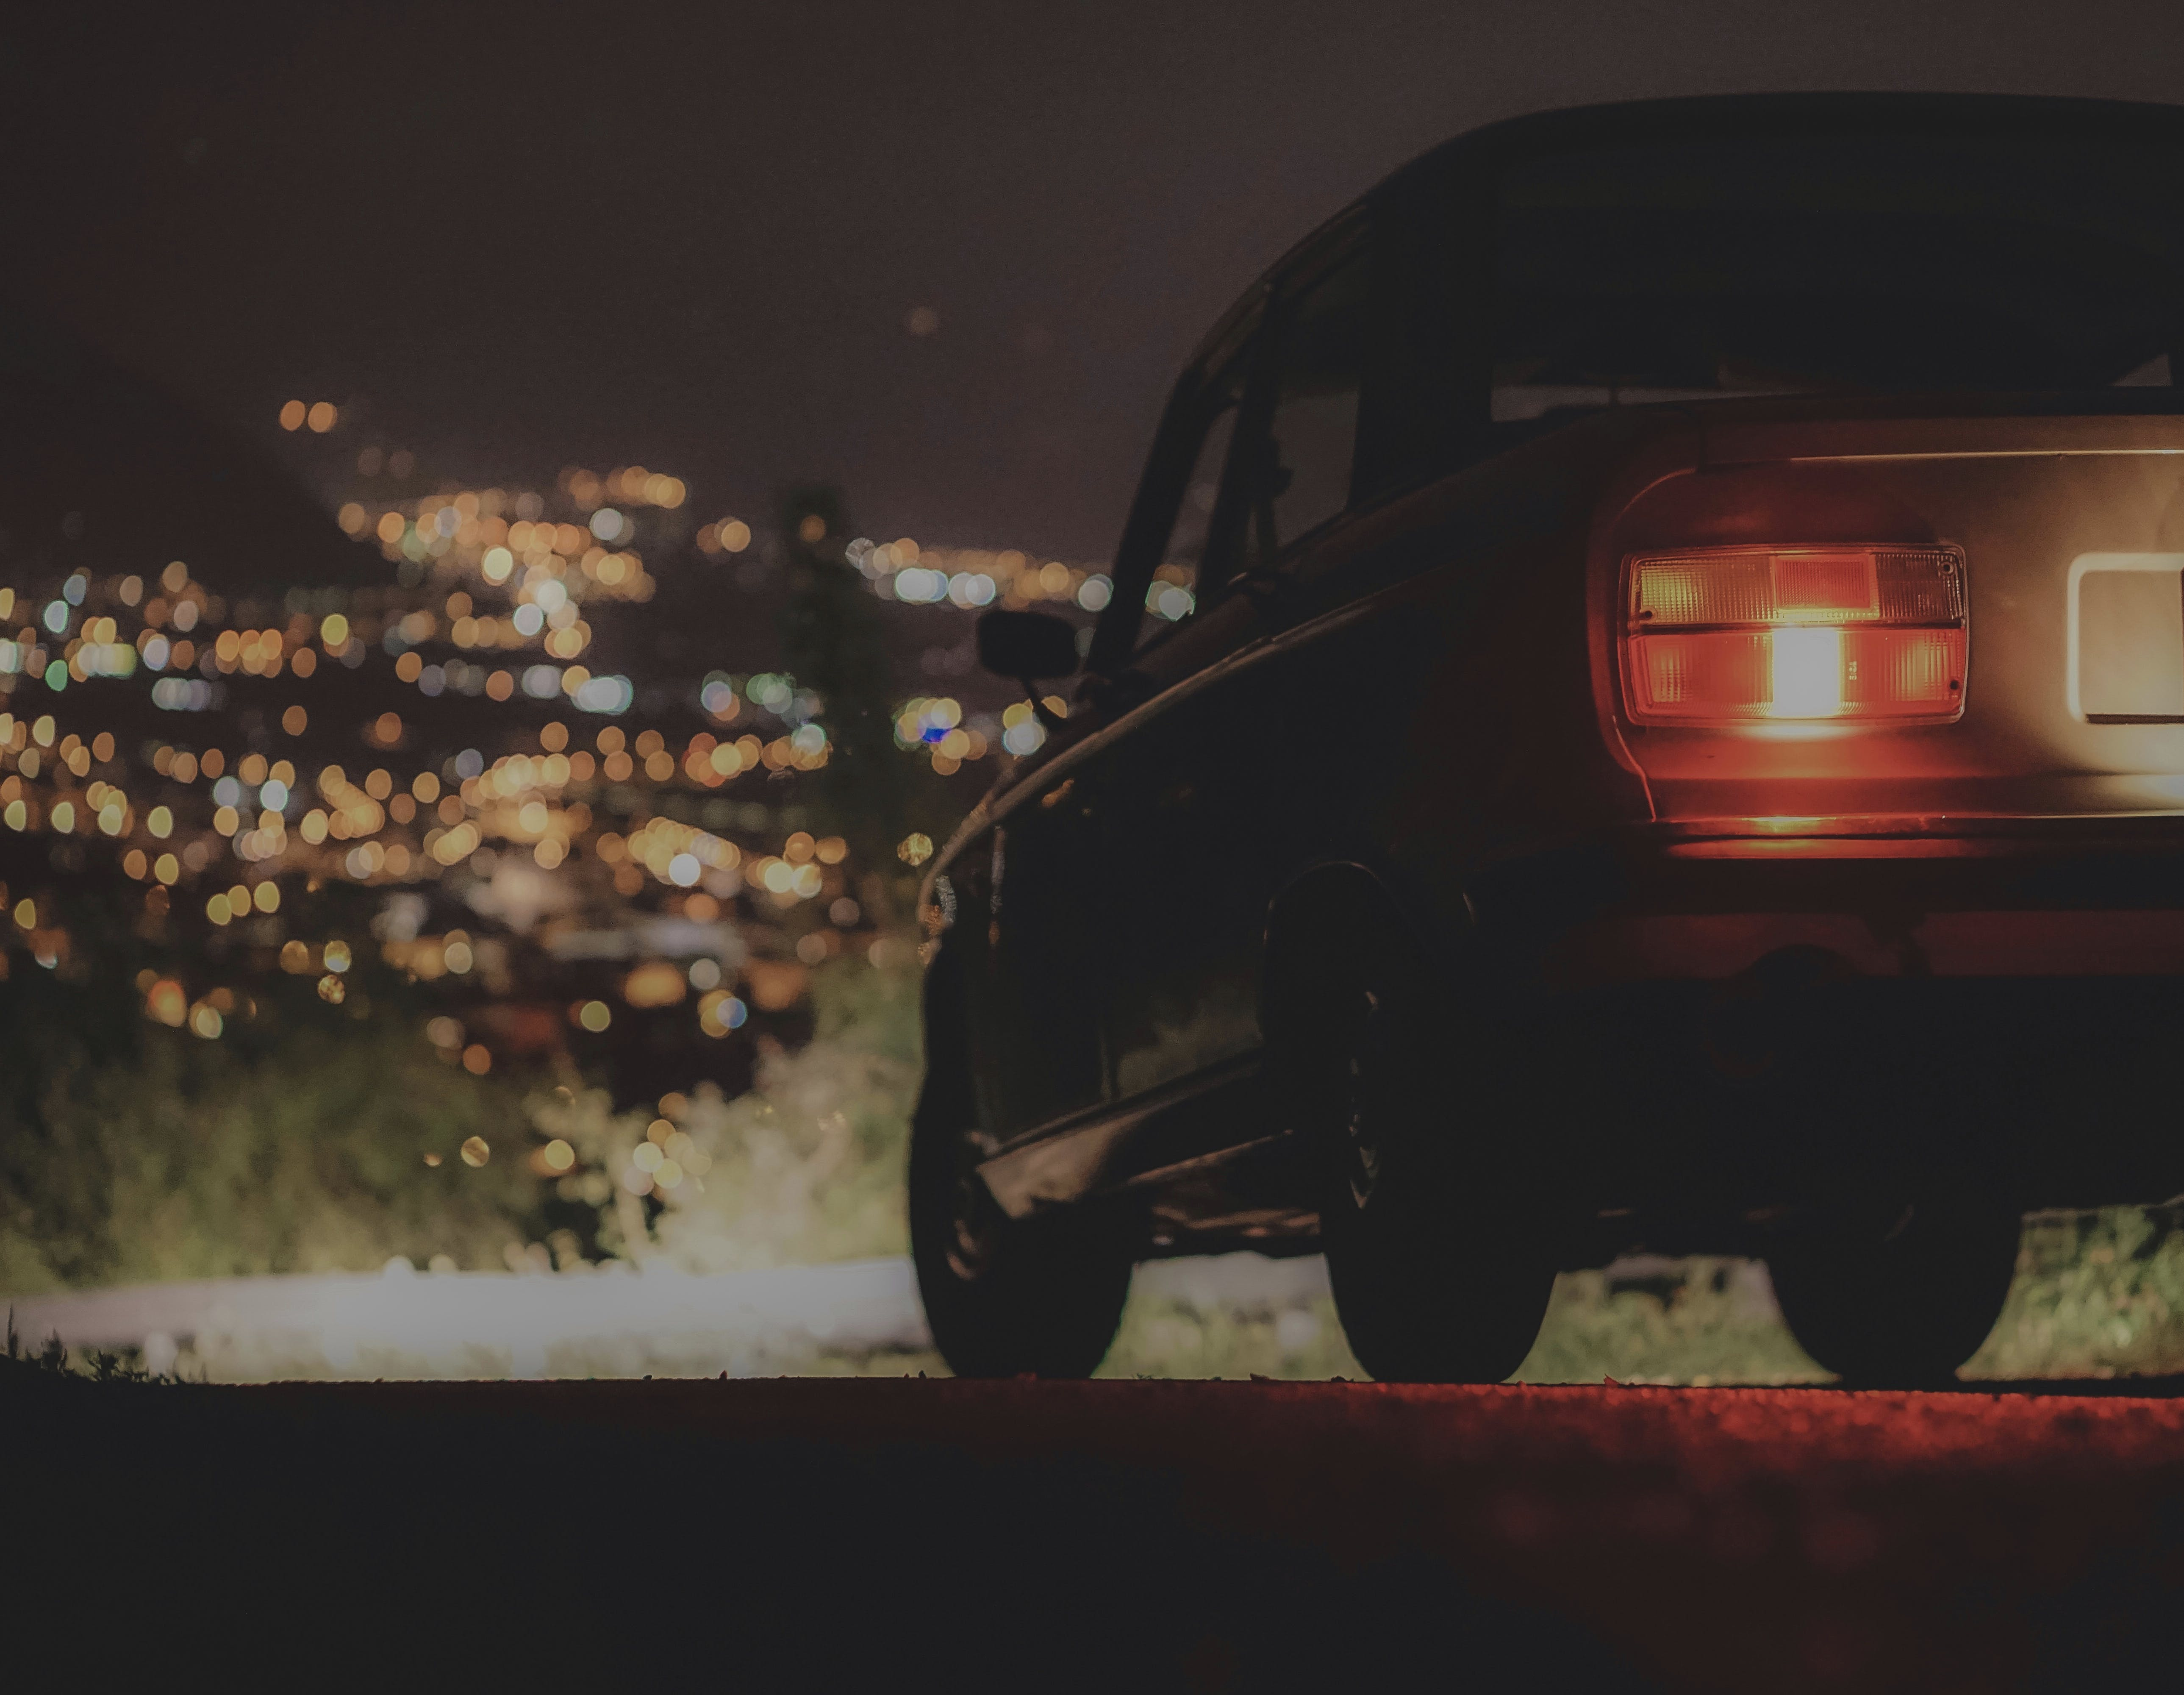 Free stock photo of automobile, automotive, big city, car lights